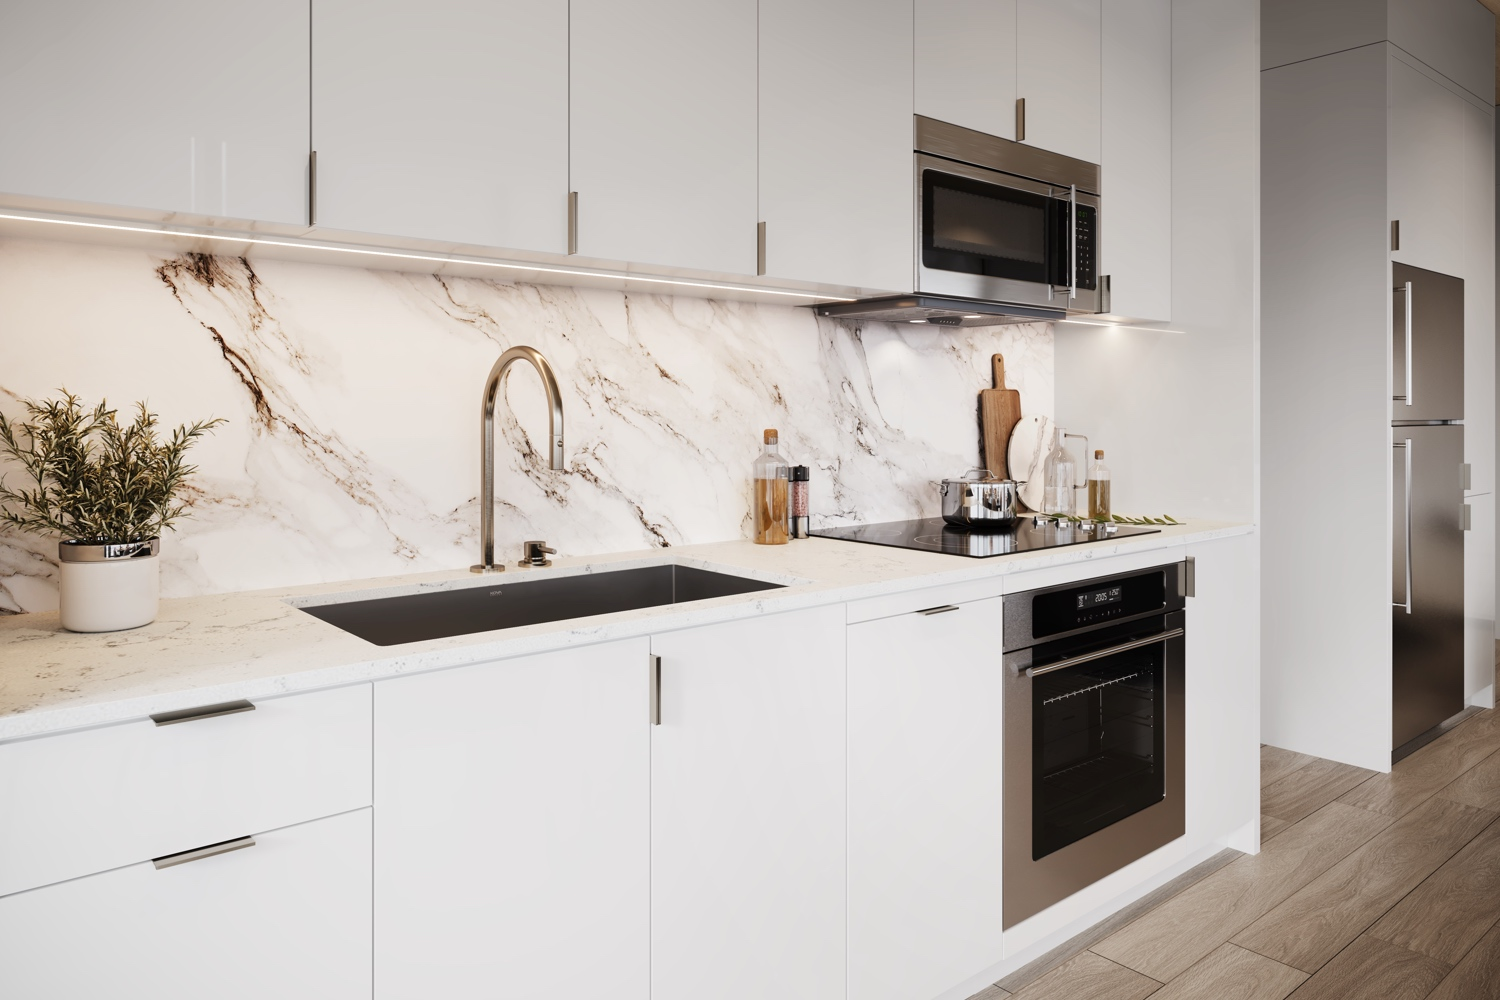 Interior of a kitchen with marble blacksplash and white cabinets